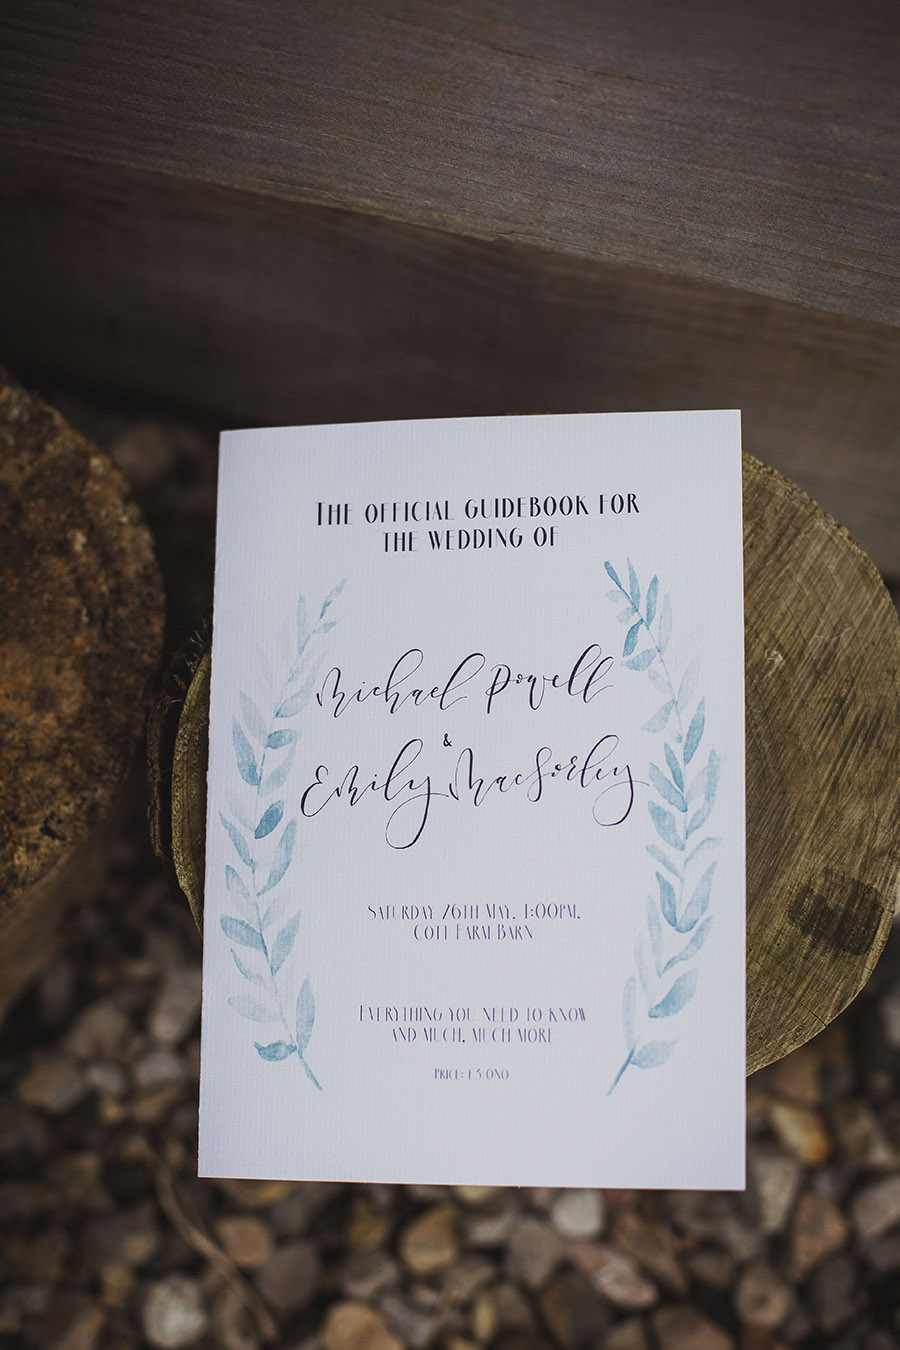 Relaxed outdoor wedding at Cott Farm Barn with images by Heather Birnie Photography on the English Wedding Blog (11)